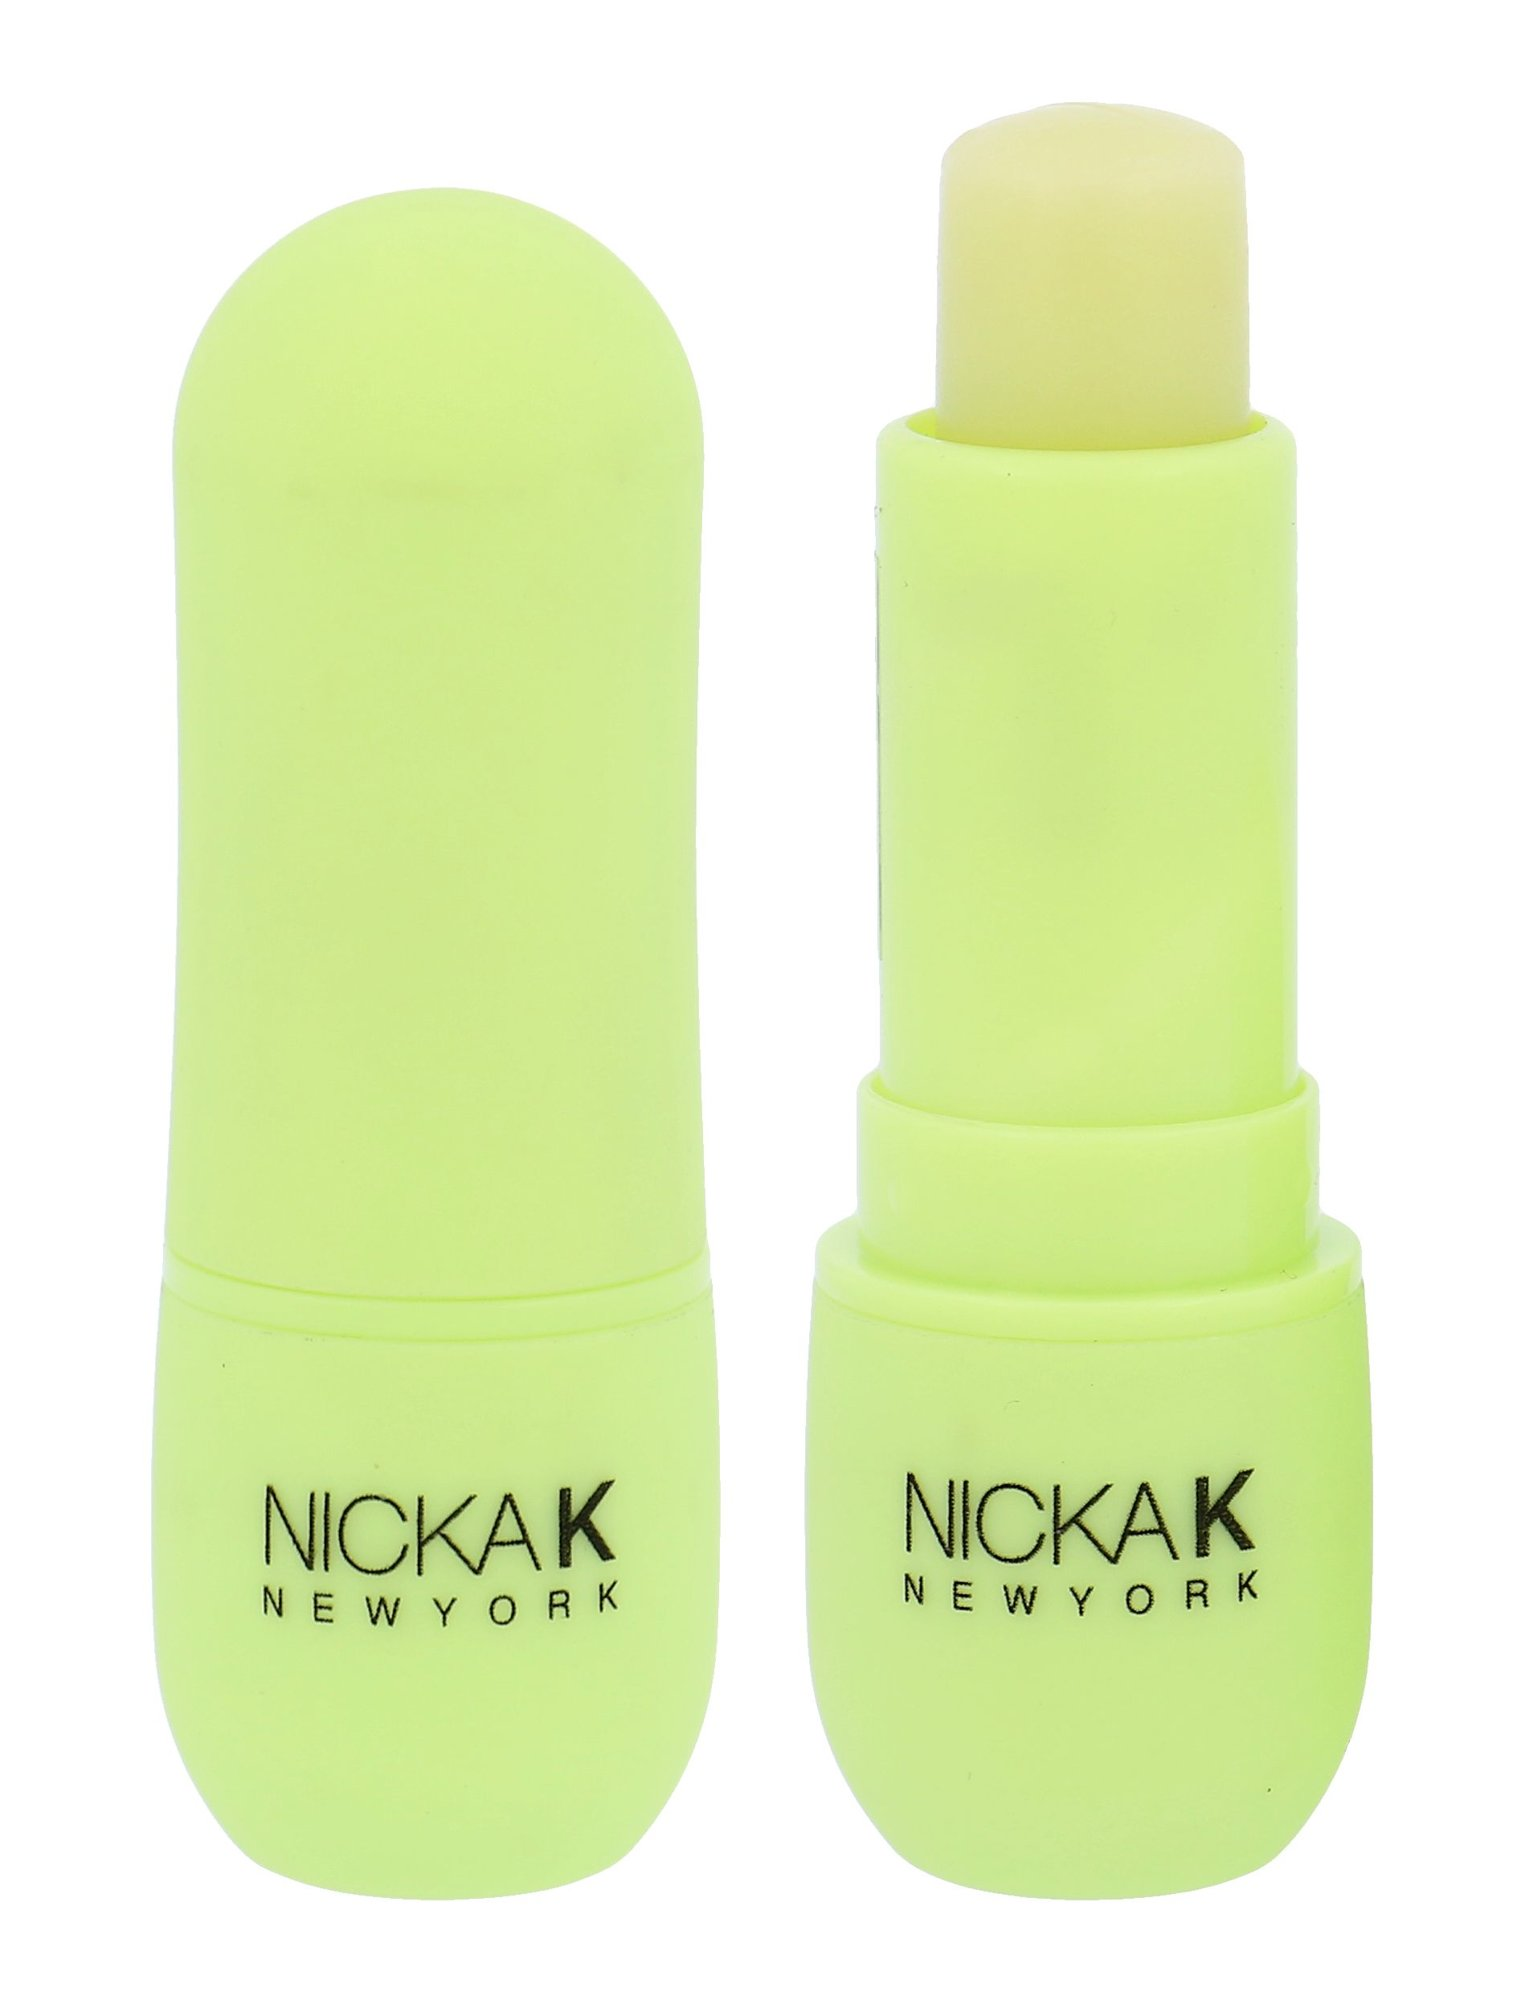 Nicka K New York Hydro Care Lip Balm Cosmetic 4,2g Apple